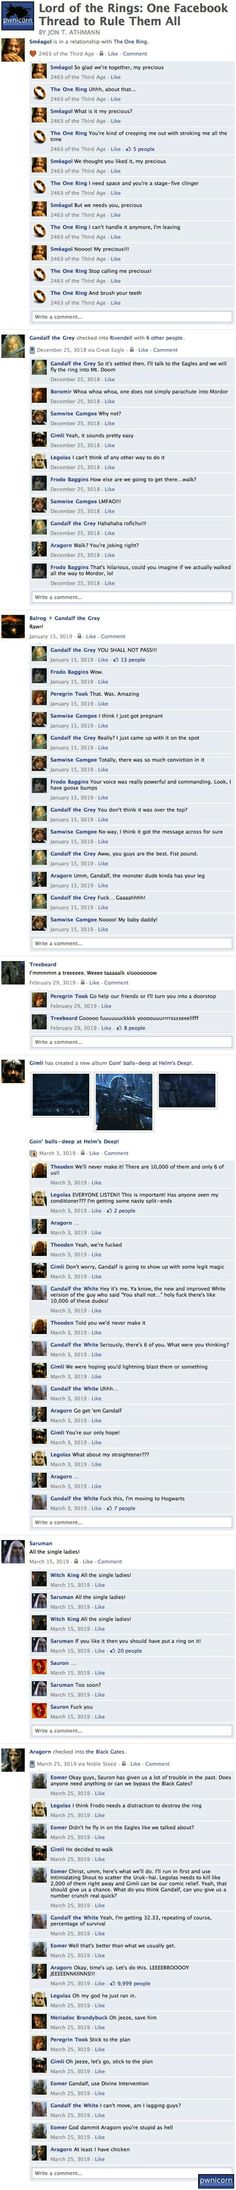 """Lord of the Rings: One Facebook Thread to Rule Them All"" by Jon T. Athmann on geeksaresexy.net."